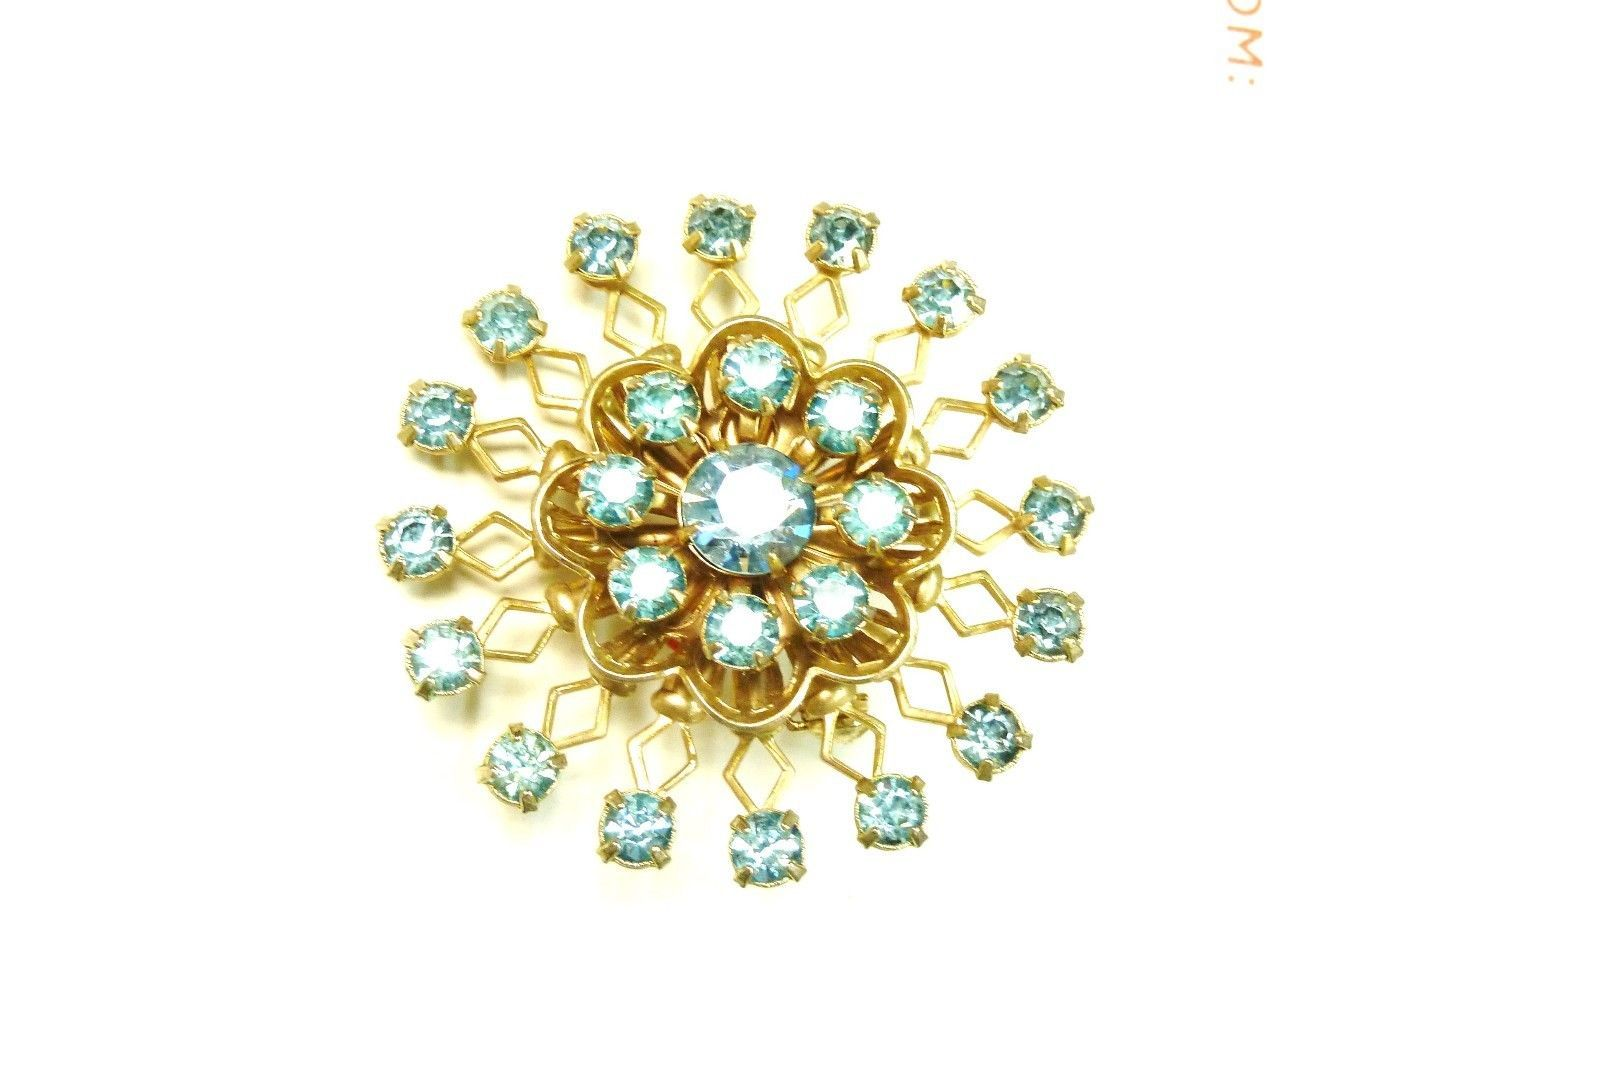 Vintage Blue Rhinestone Round Gold Plated Costume Fashion Pin Brooch image 3